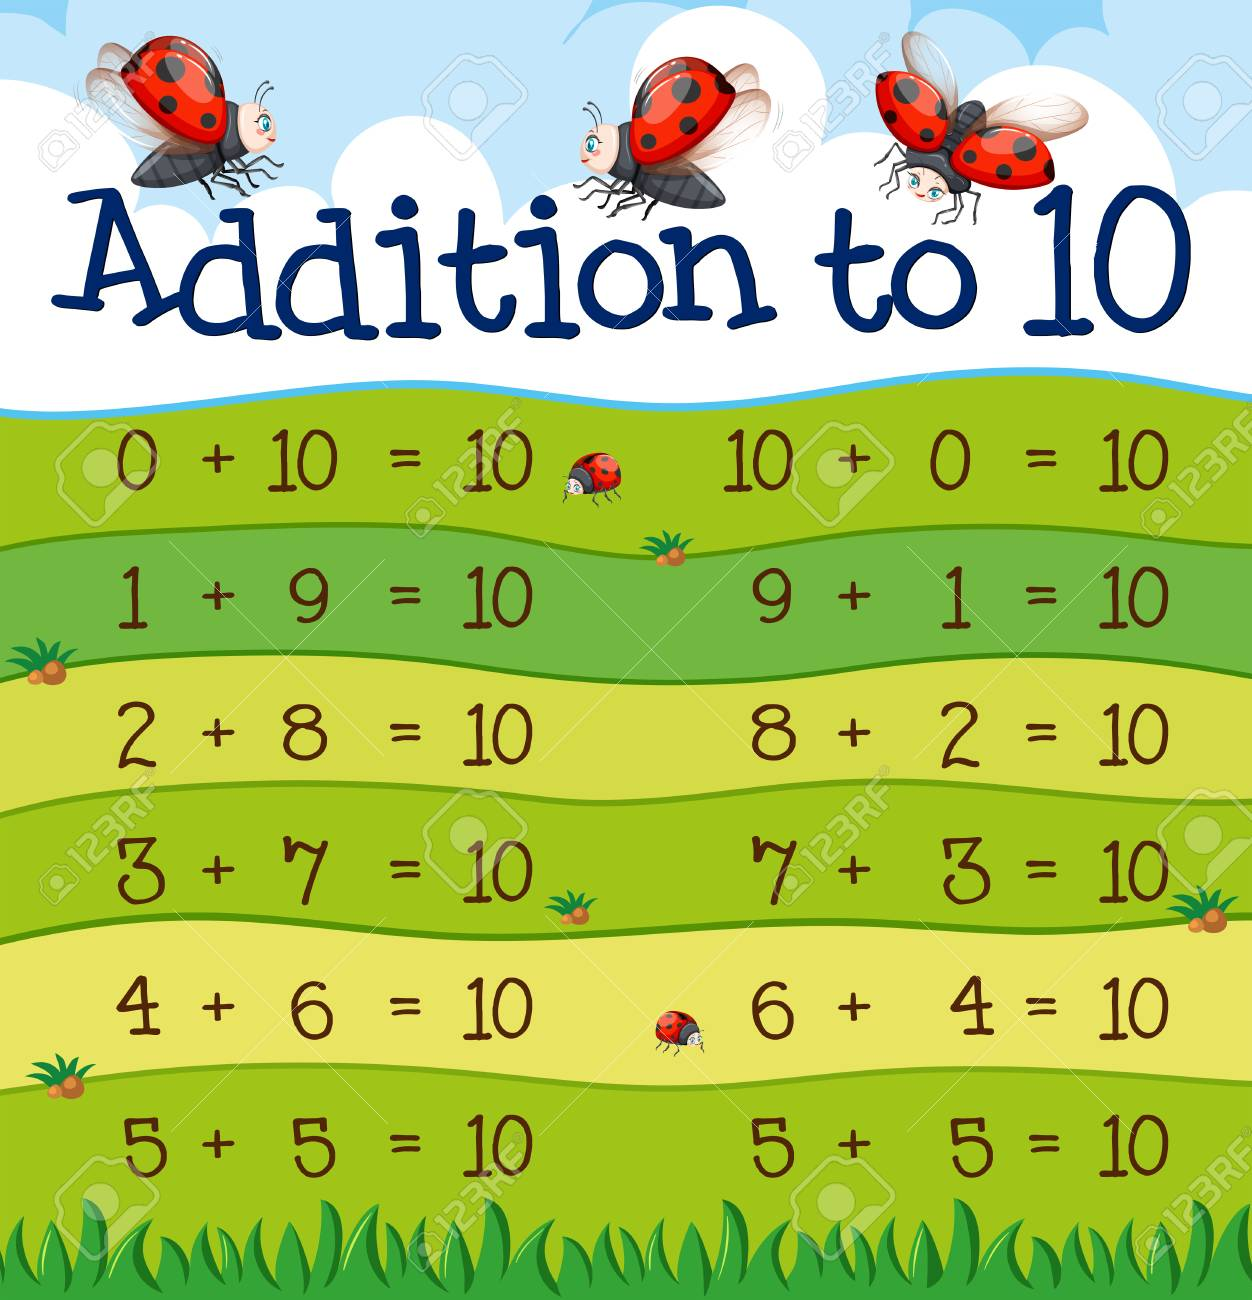 An Addition to 10 Table illustration - 103863559